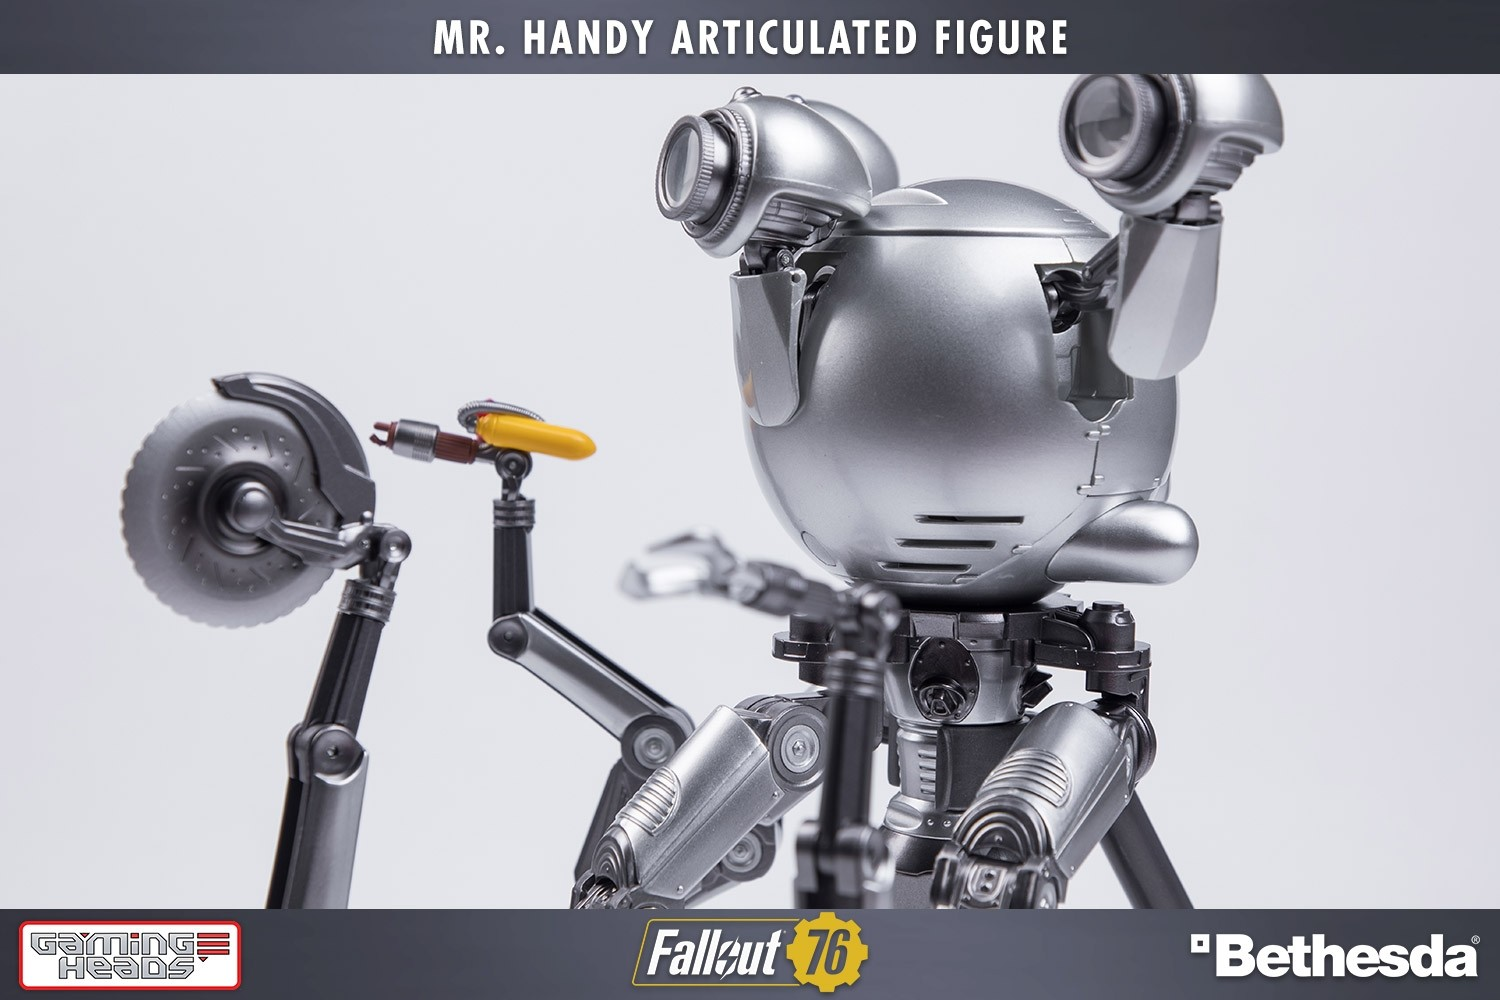 Fallout®: Mister Handy Deluxe Articulated Figure